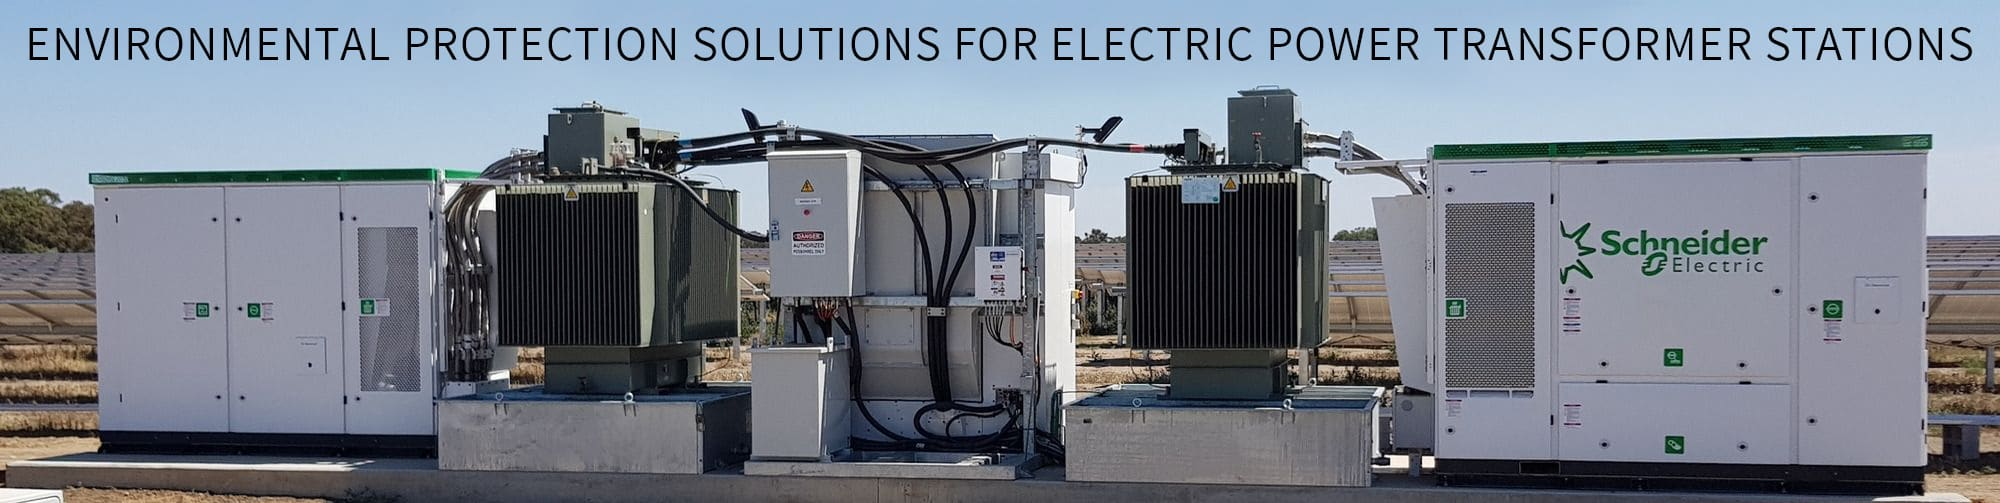 Environmental protection solutions for electric power transformer stations